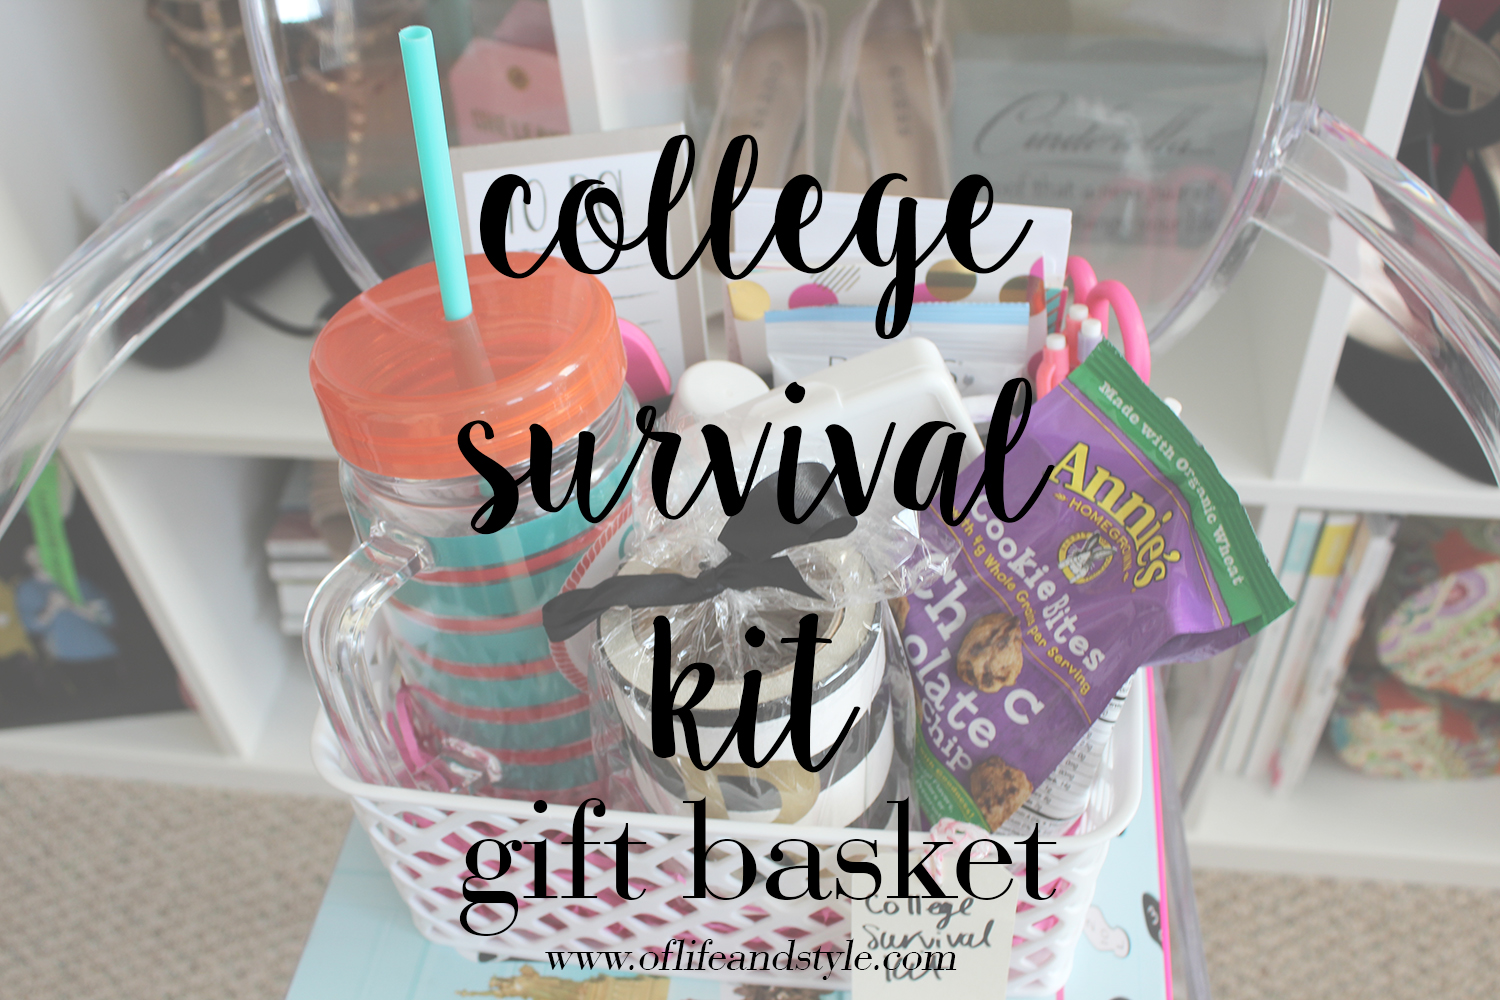 Great gifts for college guys 2015 inspirations of christmas gift college graduation gifts for him source of life and style college survival kit gift basket negle Image collections